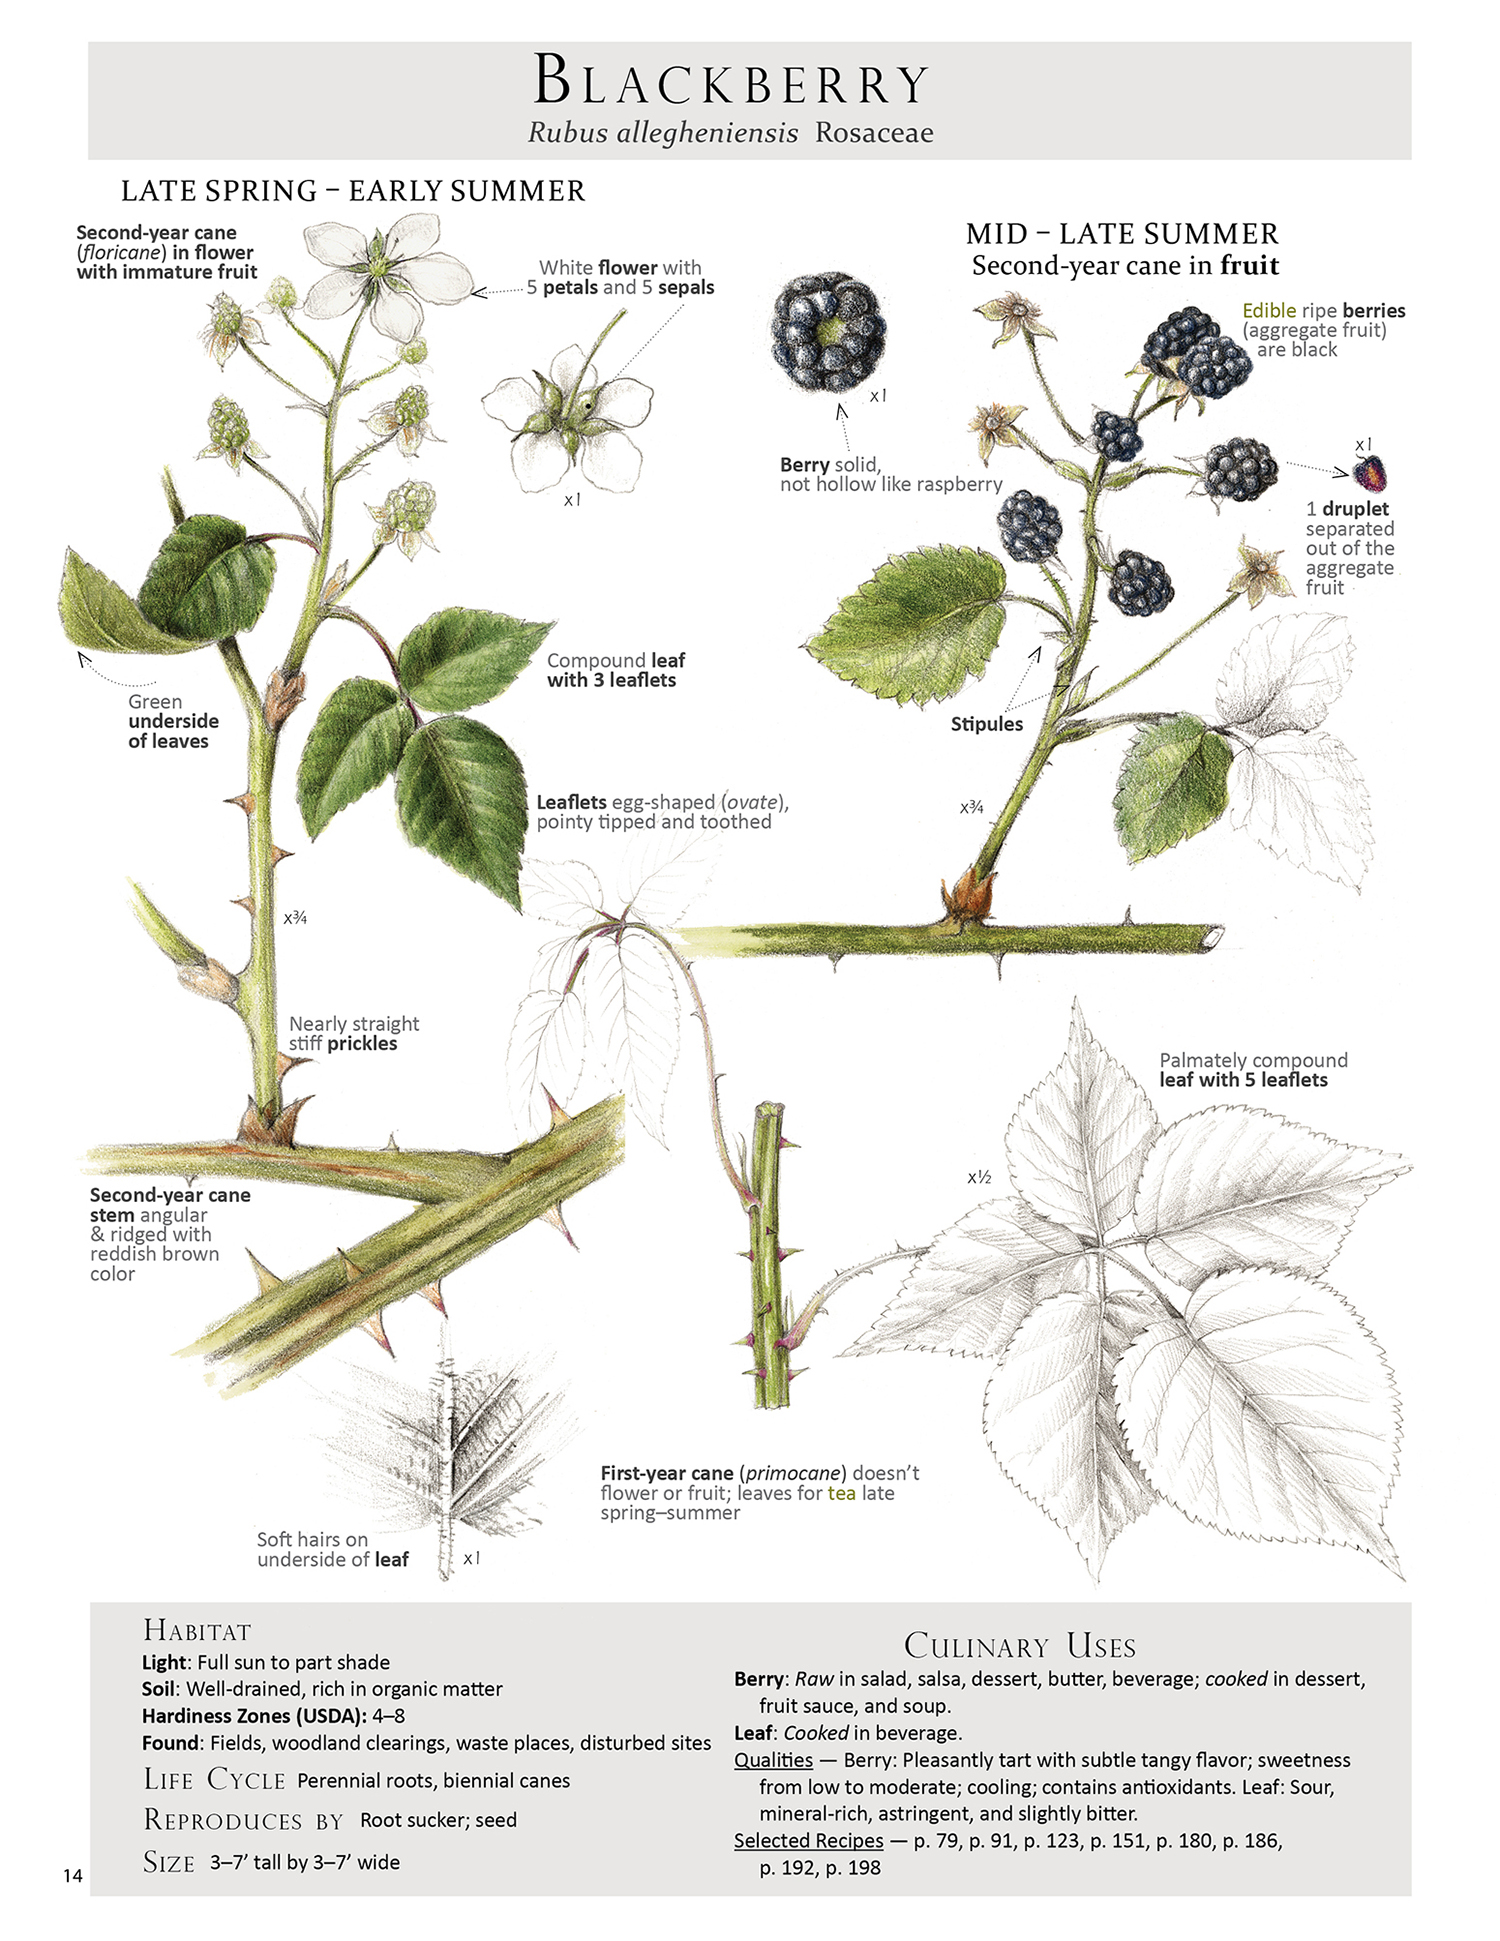 To help with id, harvest and use here is the blackberry plant map from our book Foraging & Feasting: A Field Guide and Wild Food Cookbook by Dina Falconi, illustrated by Wendy Hollender. Book Link:    http://bit.ly/1Auh44Q